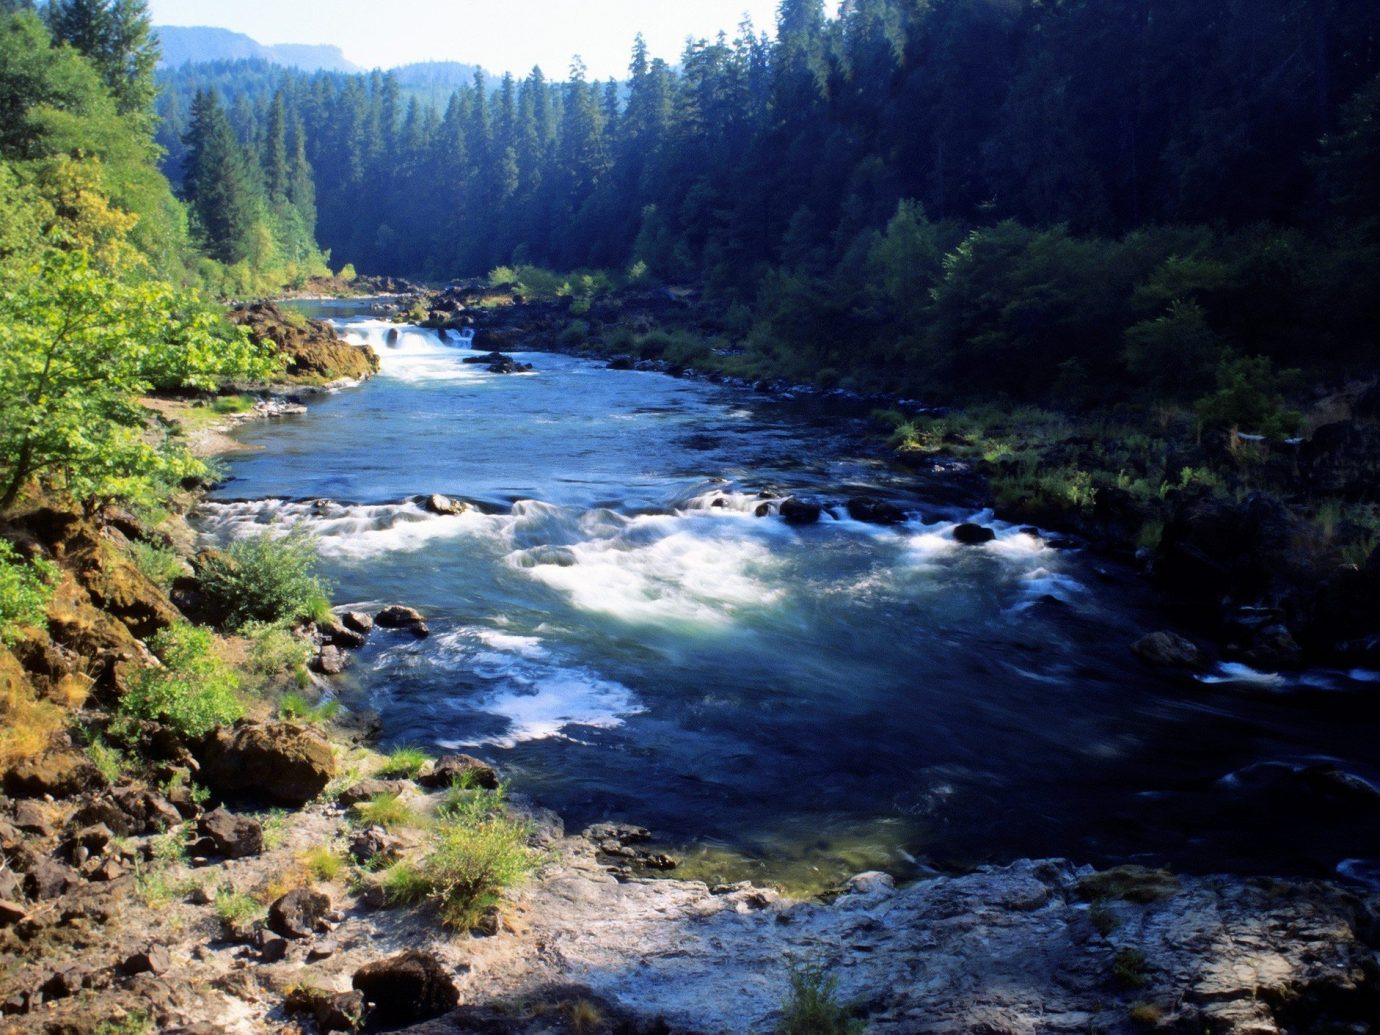 Trip Ideas tree outdoor Nature River landform Forest geographical feature wilderness body of water rapid stream watercourse wooded valley surrounded hillside highland